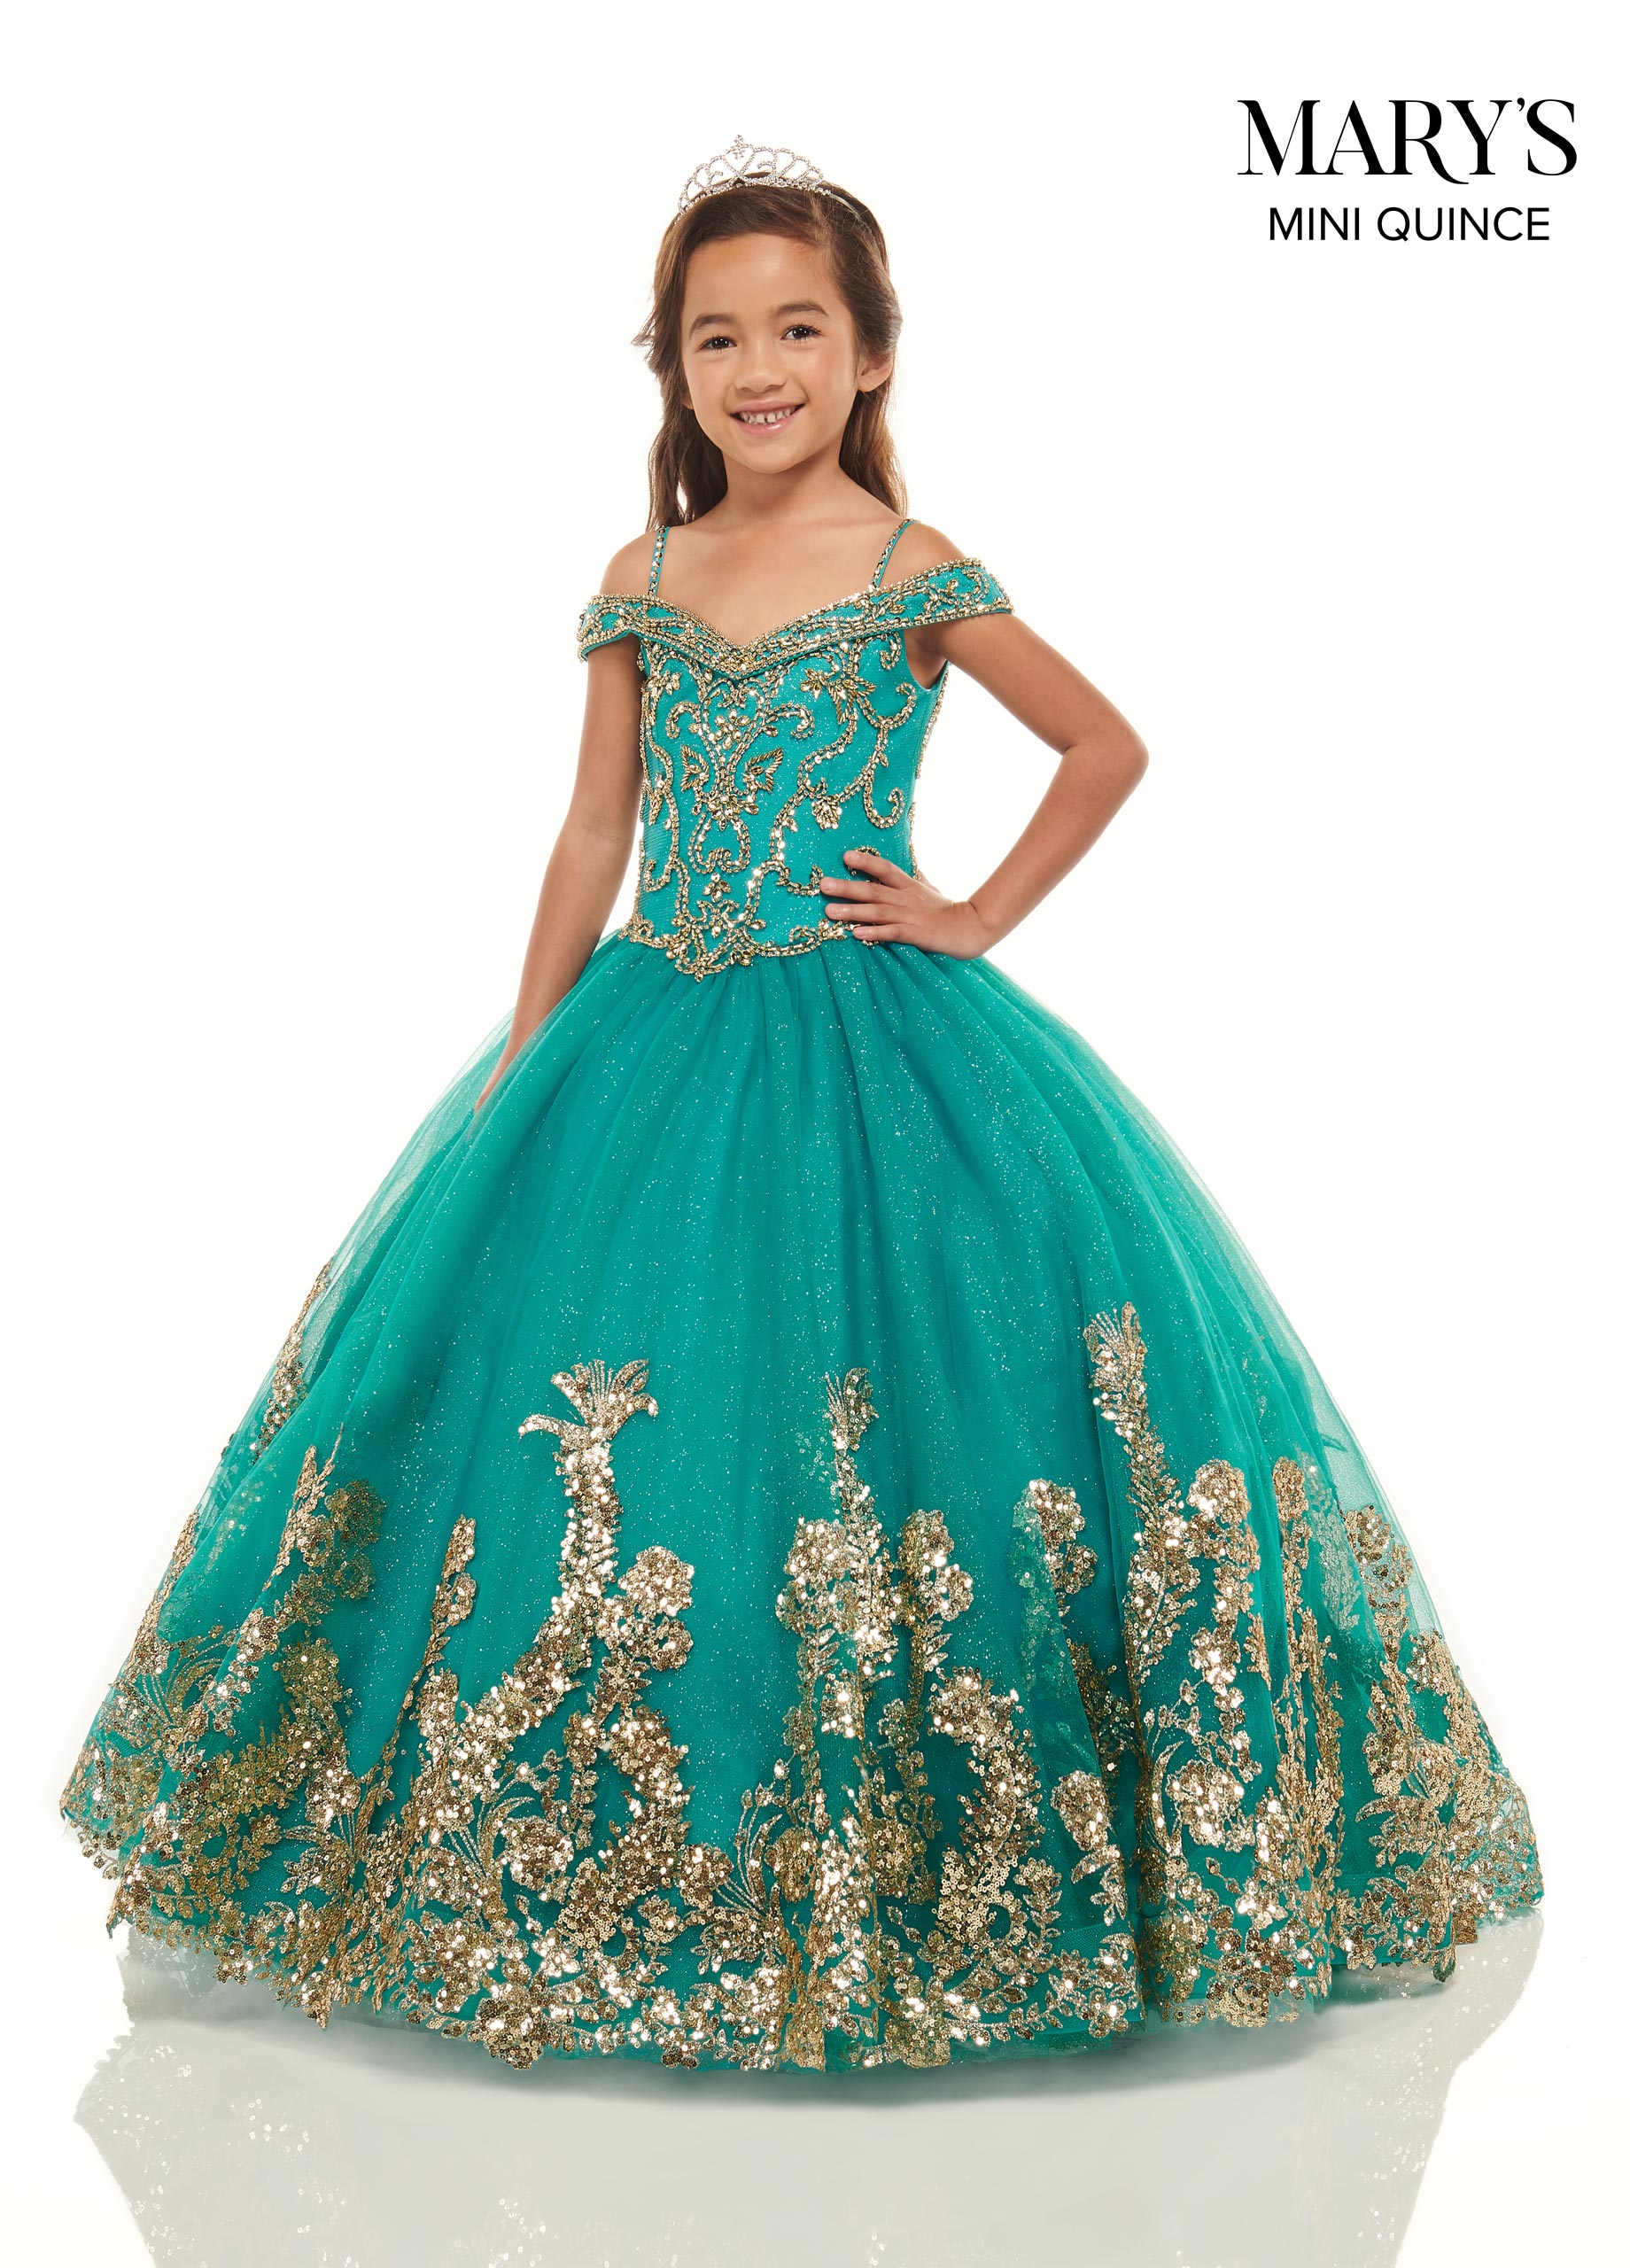 Little Quince Dresses | Mini Quince | Style - MQ4024